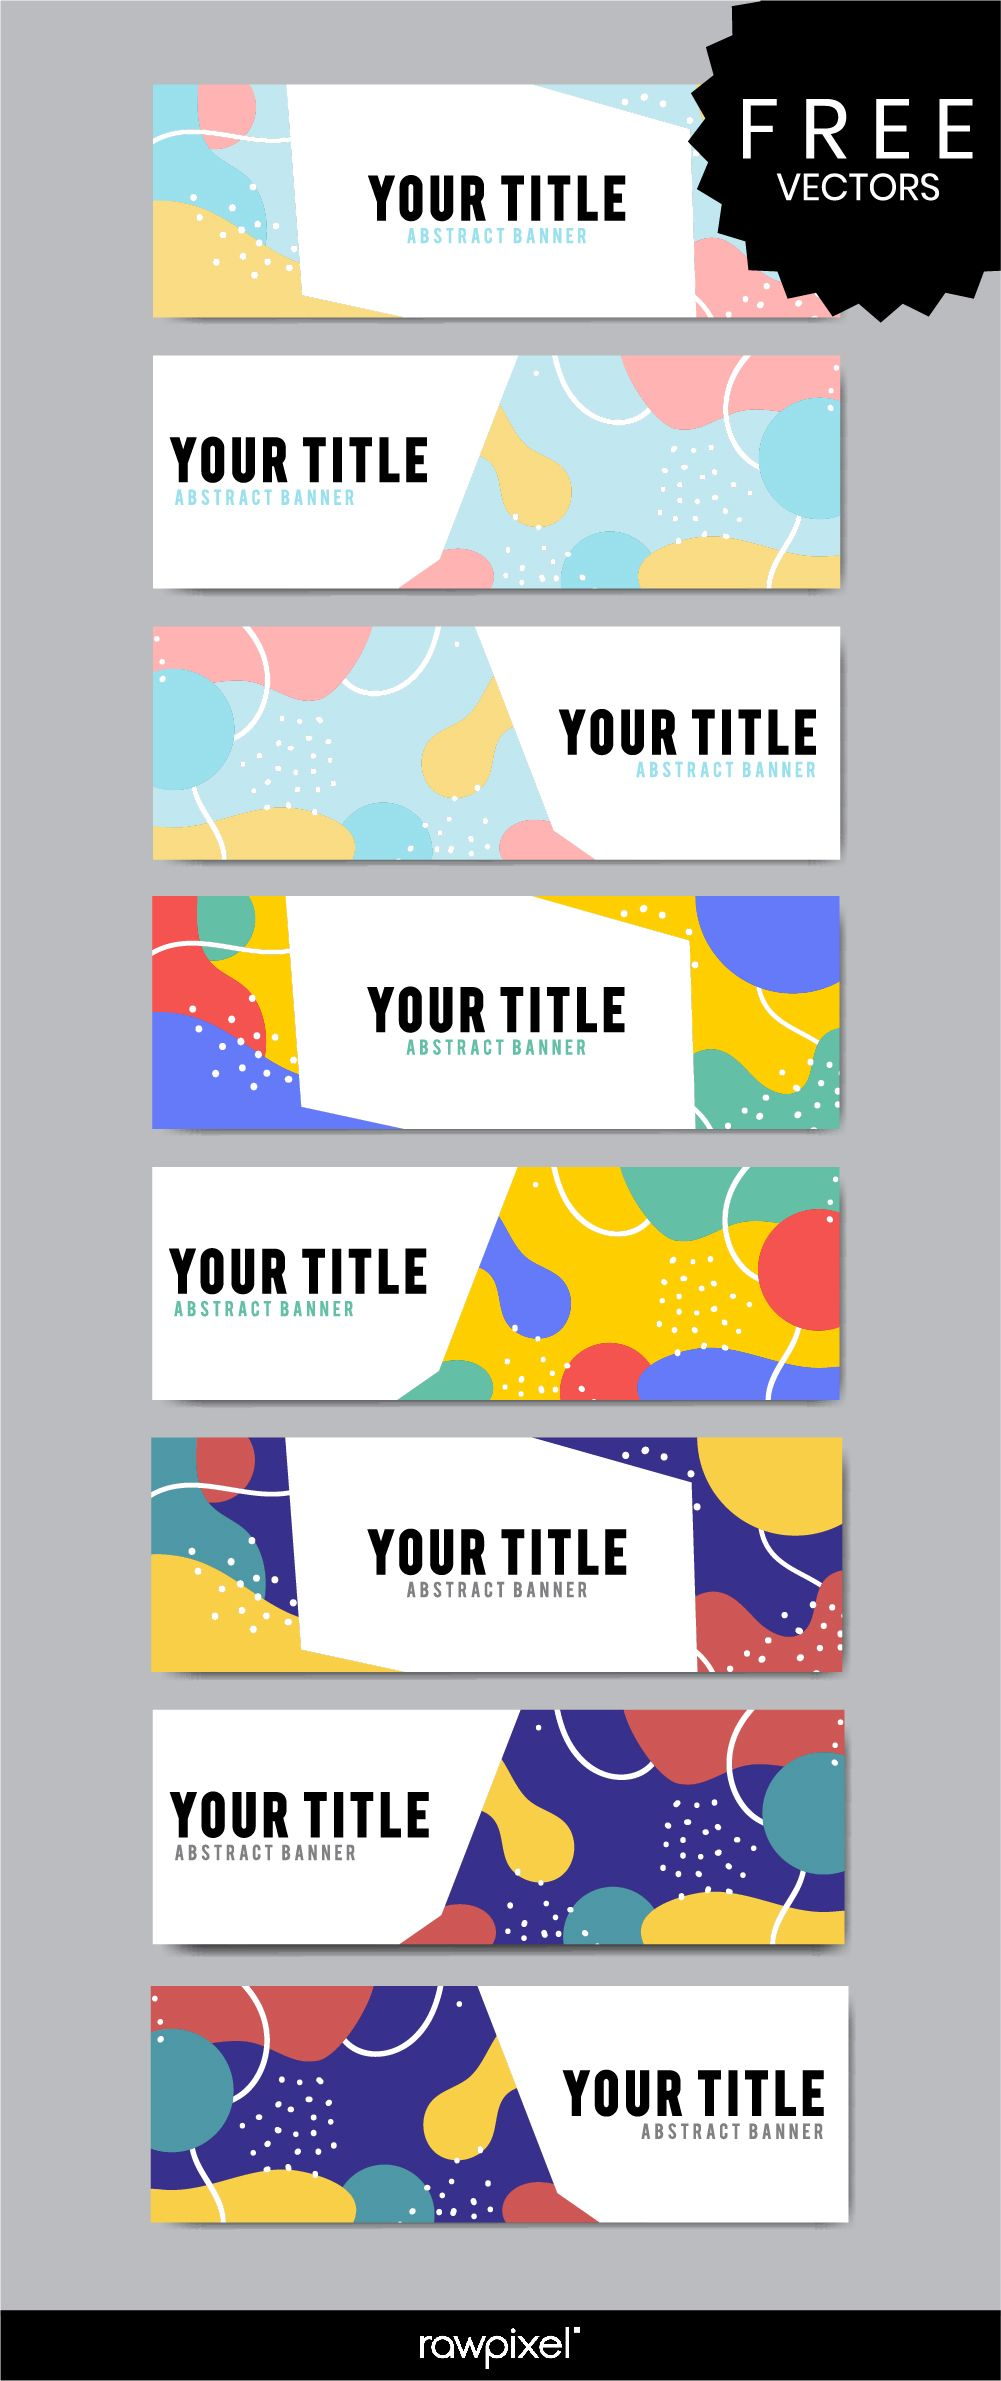 Download free modern business banner templates in Memphis